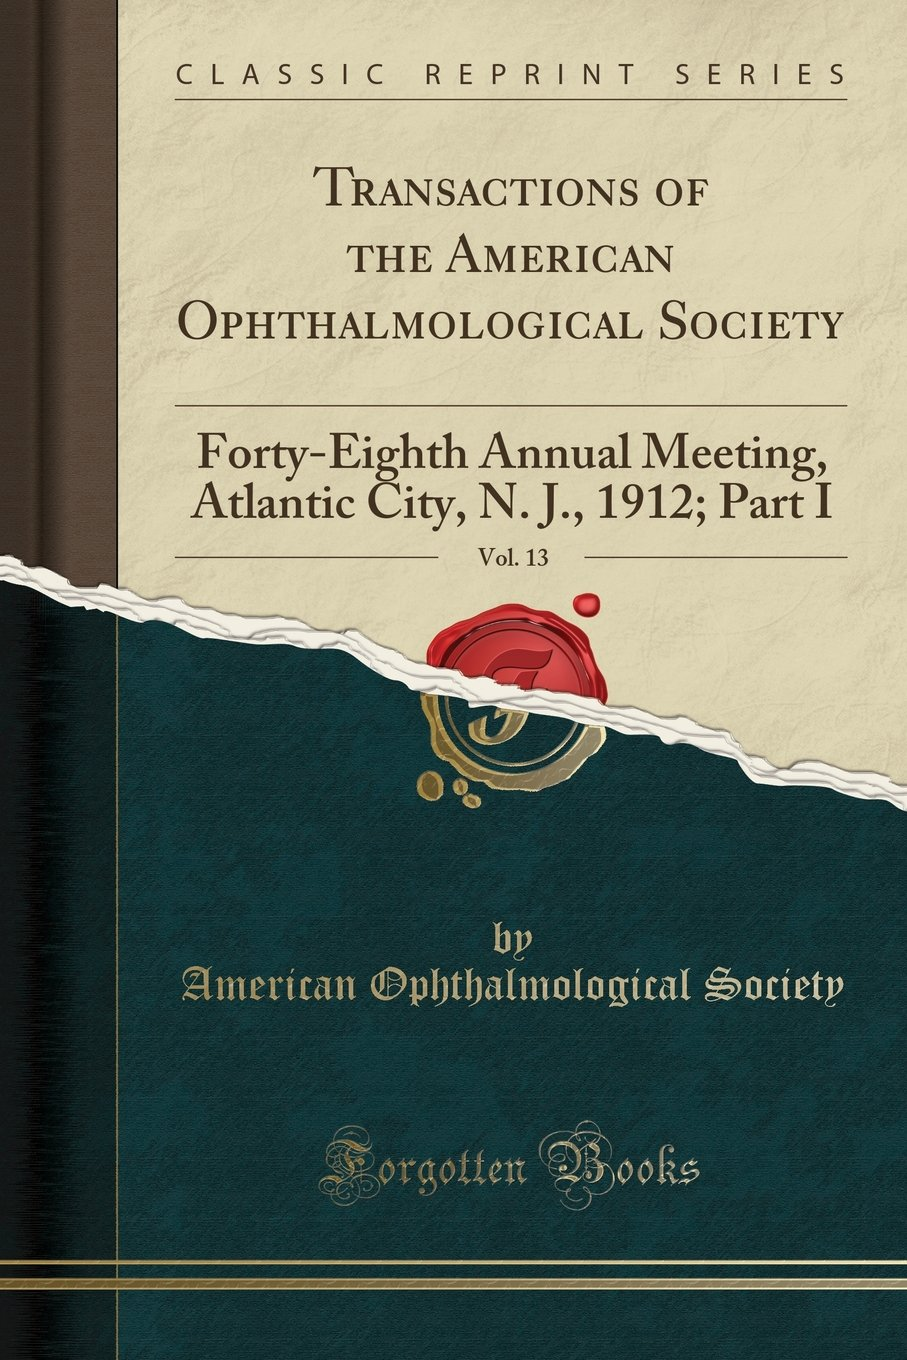 Download Transactions of the American Ophthalmological Society, Vol. 13: Forty-Eighth Annual Meeting, Atlantic City, N. J., 1912; Part I (Classic Reprint) pdf epub